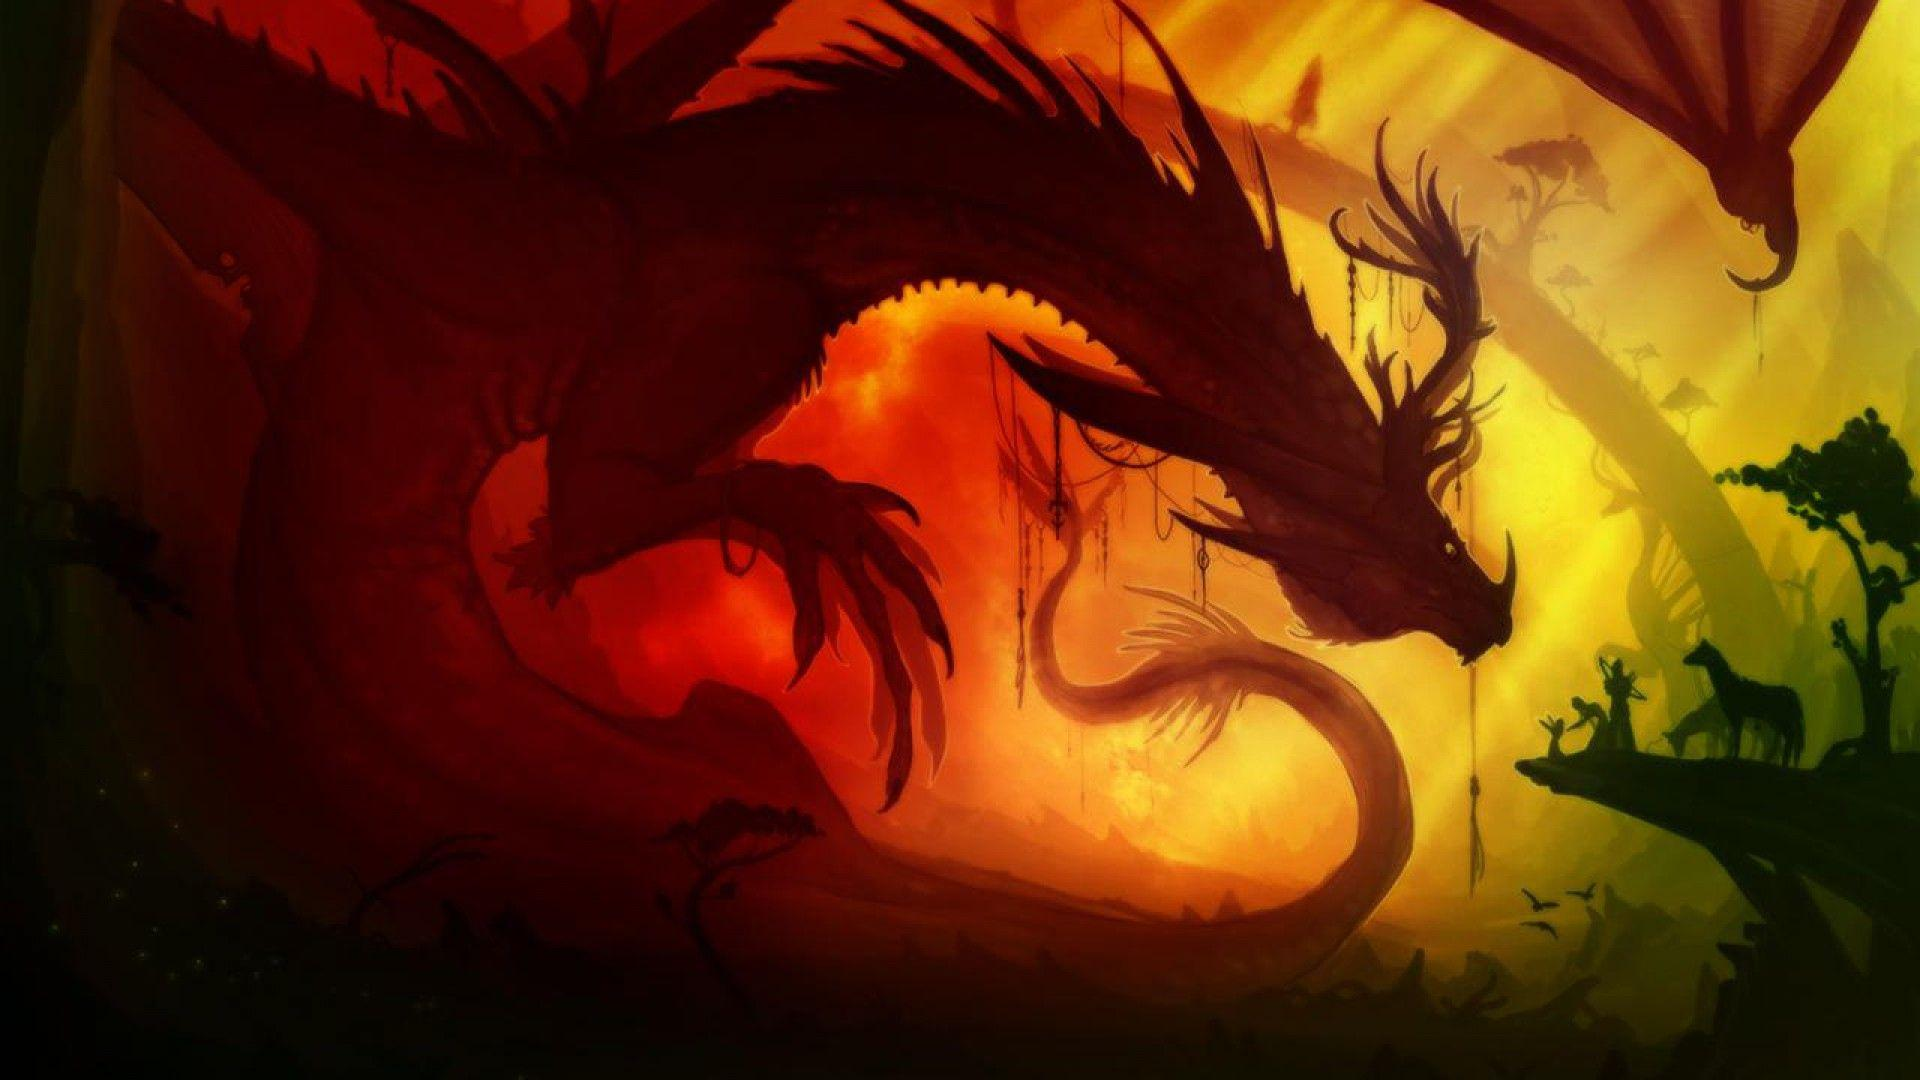 Dragon HD Wallpapers 1080p Ch19d